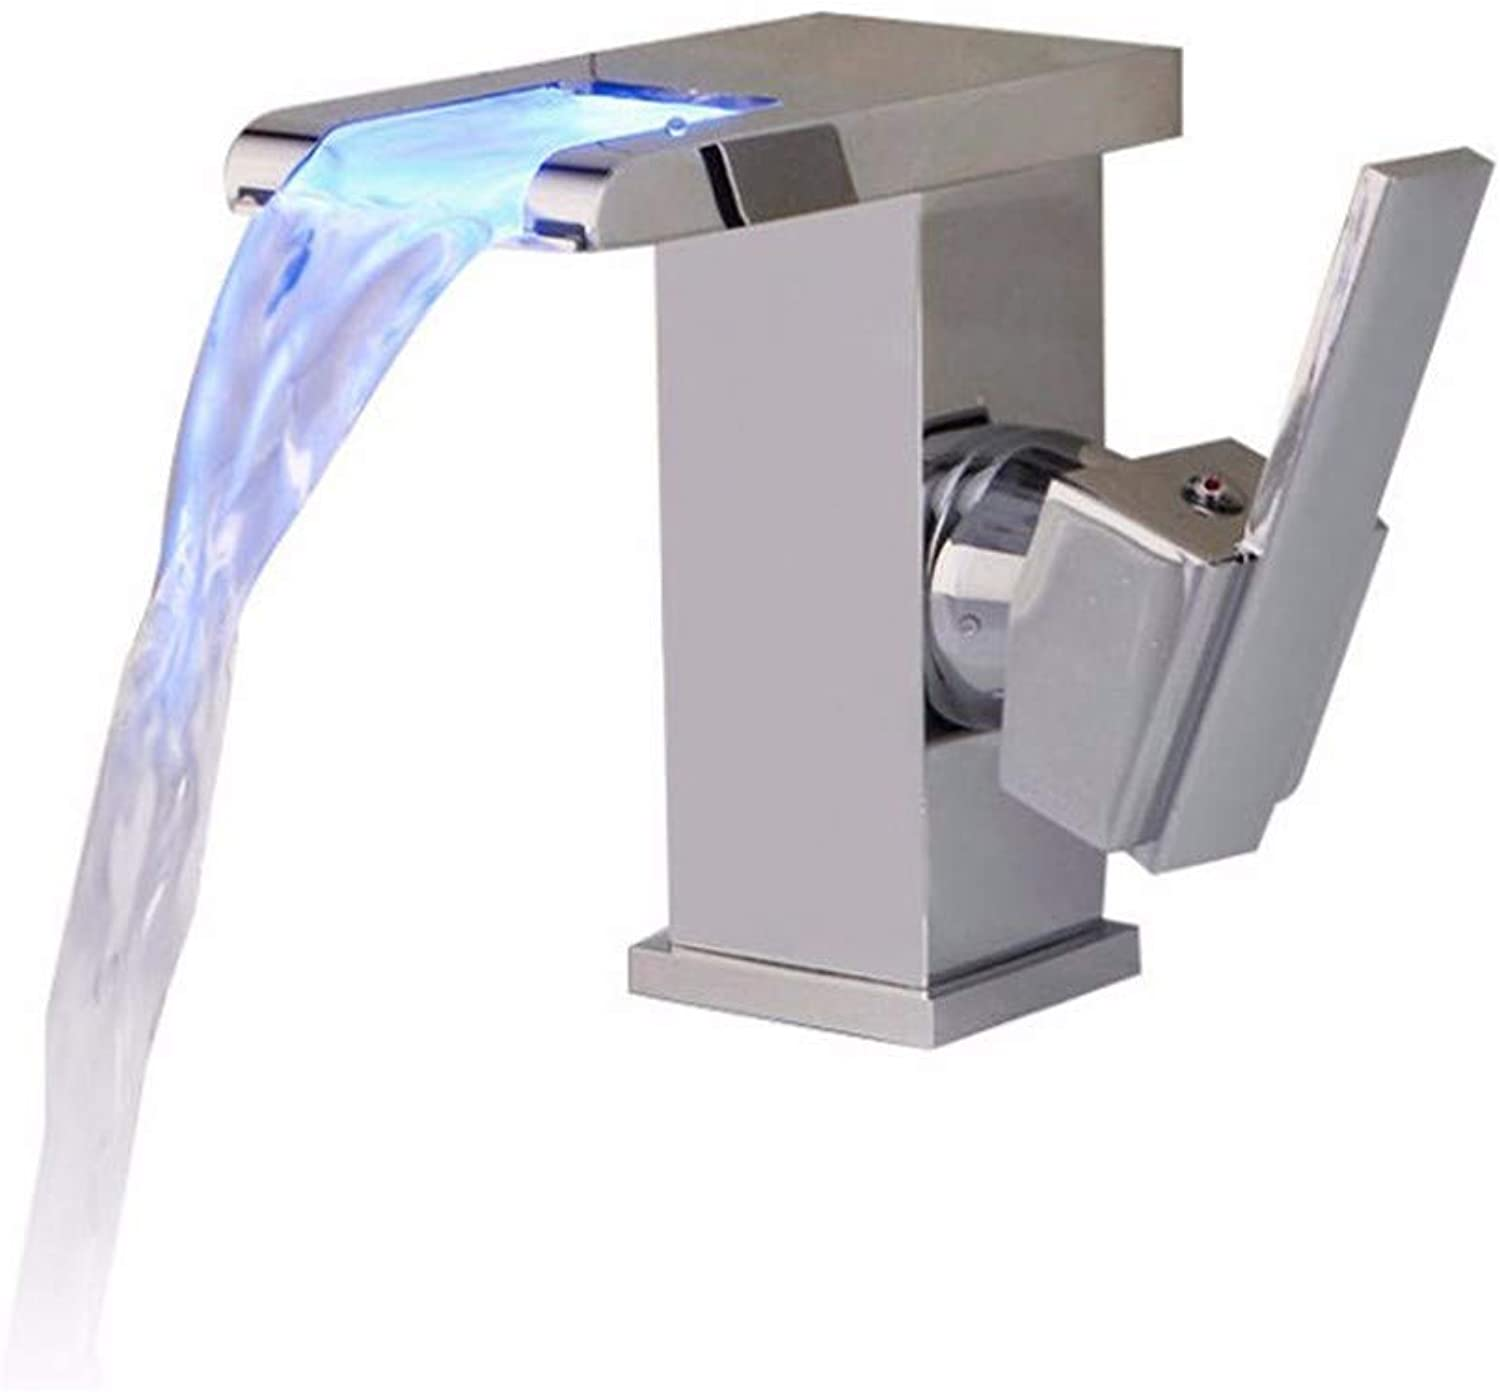 Chongxlgy-1 Basin Faucet All Copper Hot and Cold Black Continental Retro Waterfall with Light Basin, Low